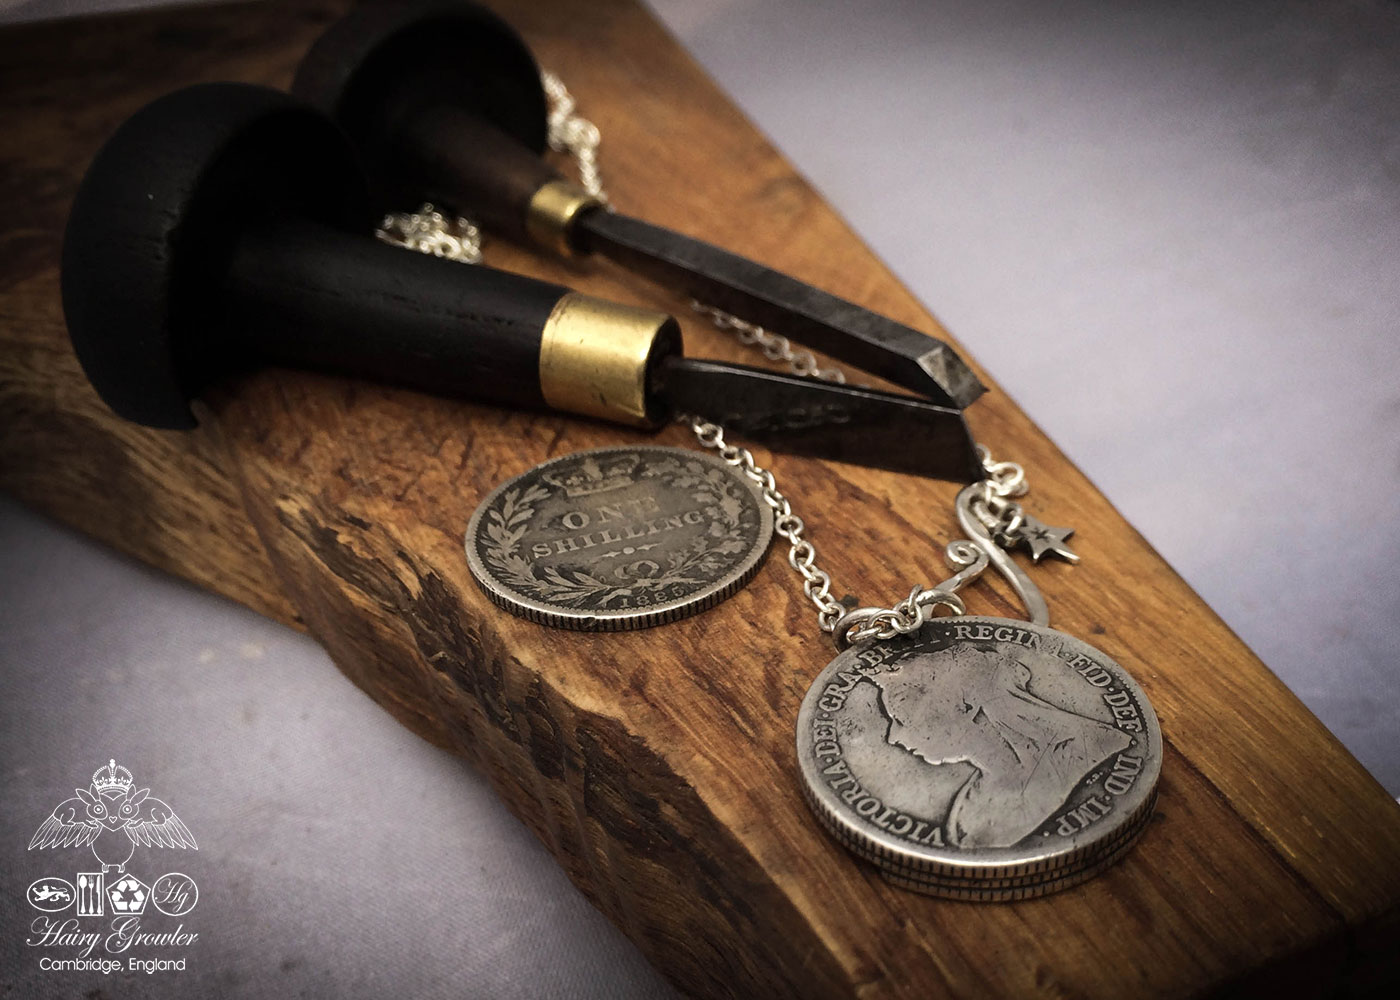 moon gazing hare necklace handcrafted and recycled from three silver shilling coins all over 100 years old